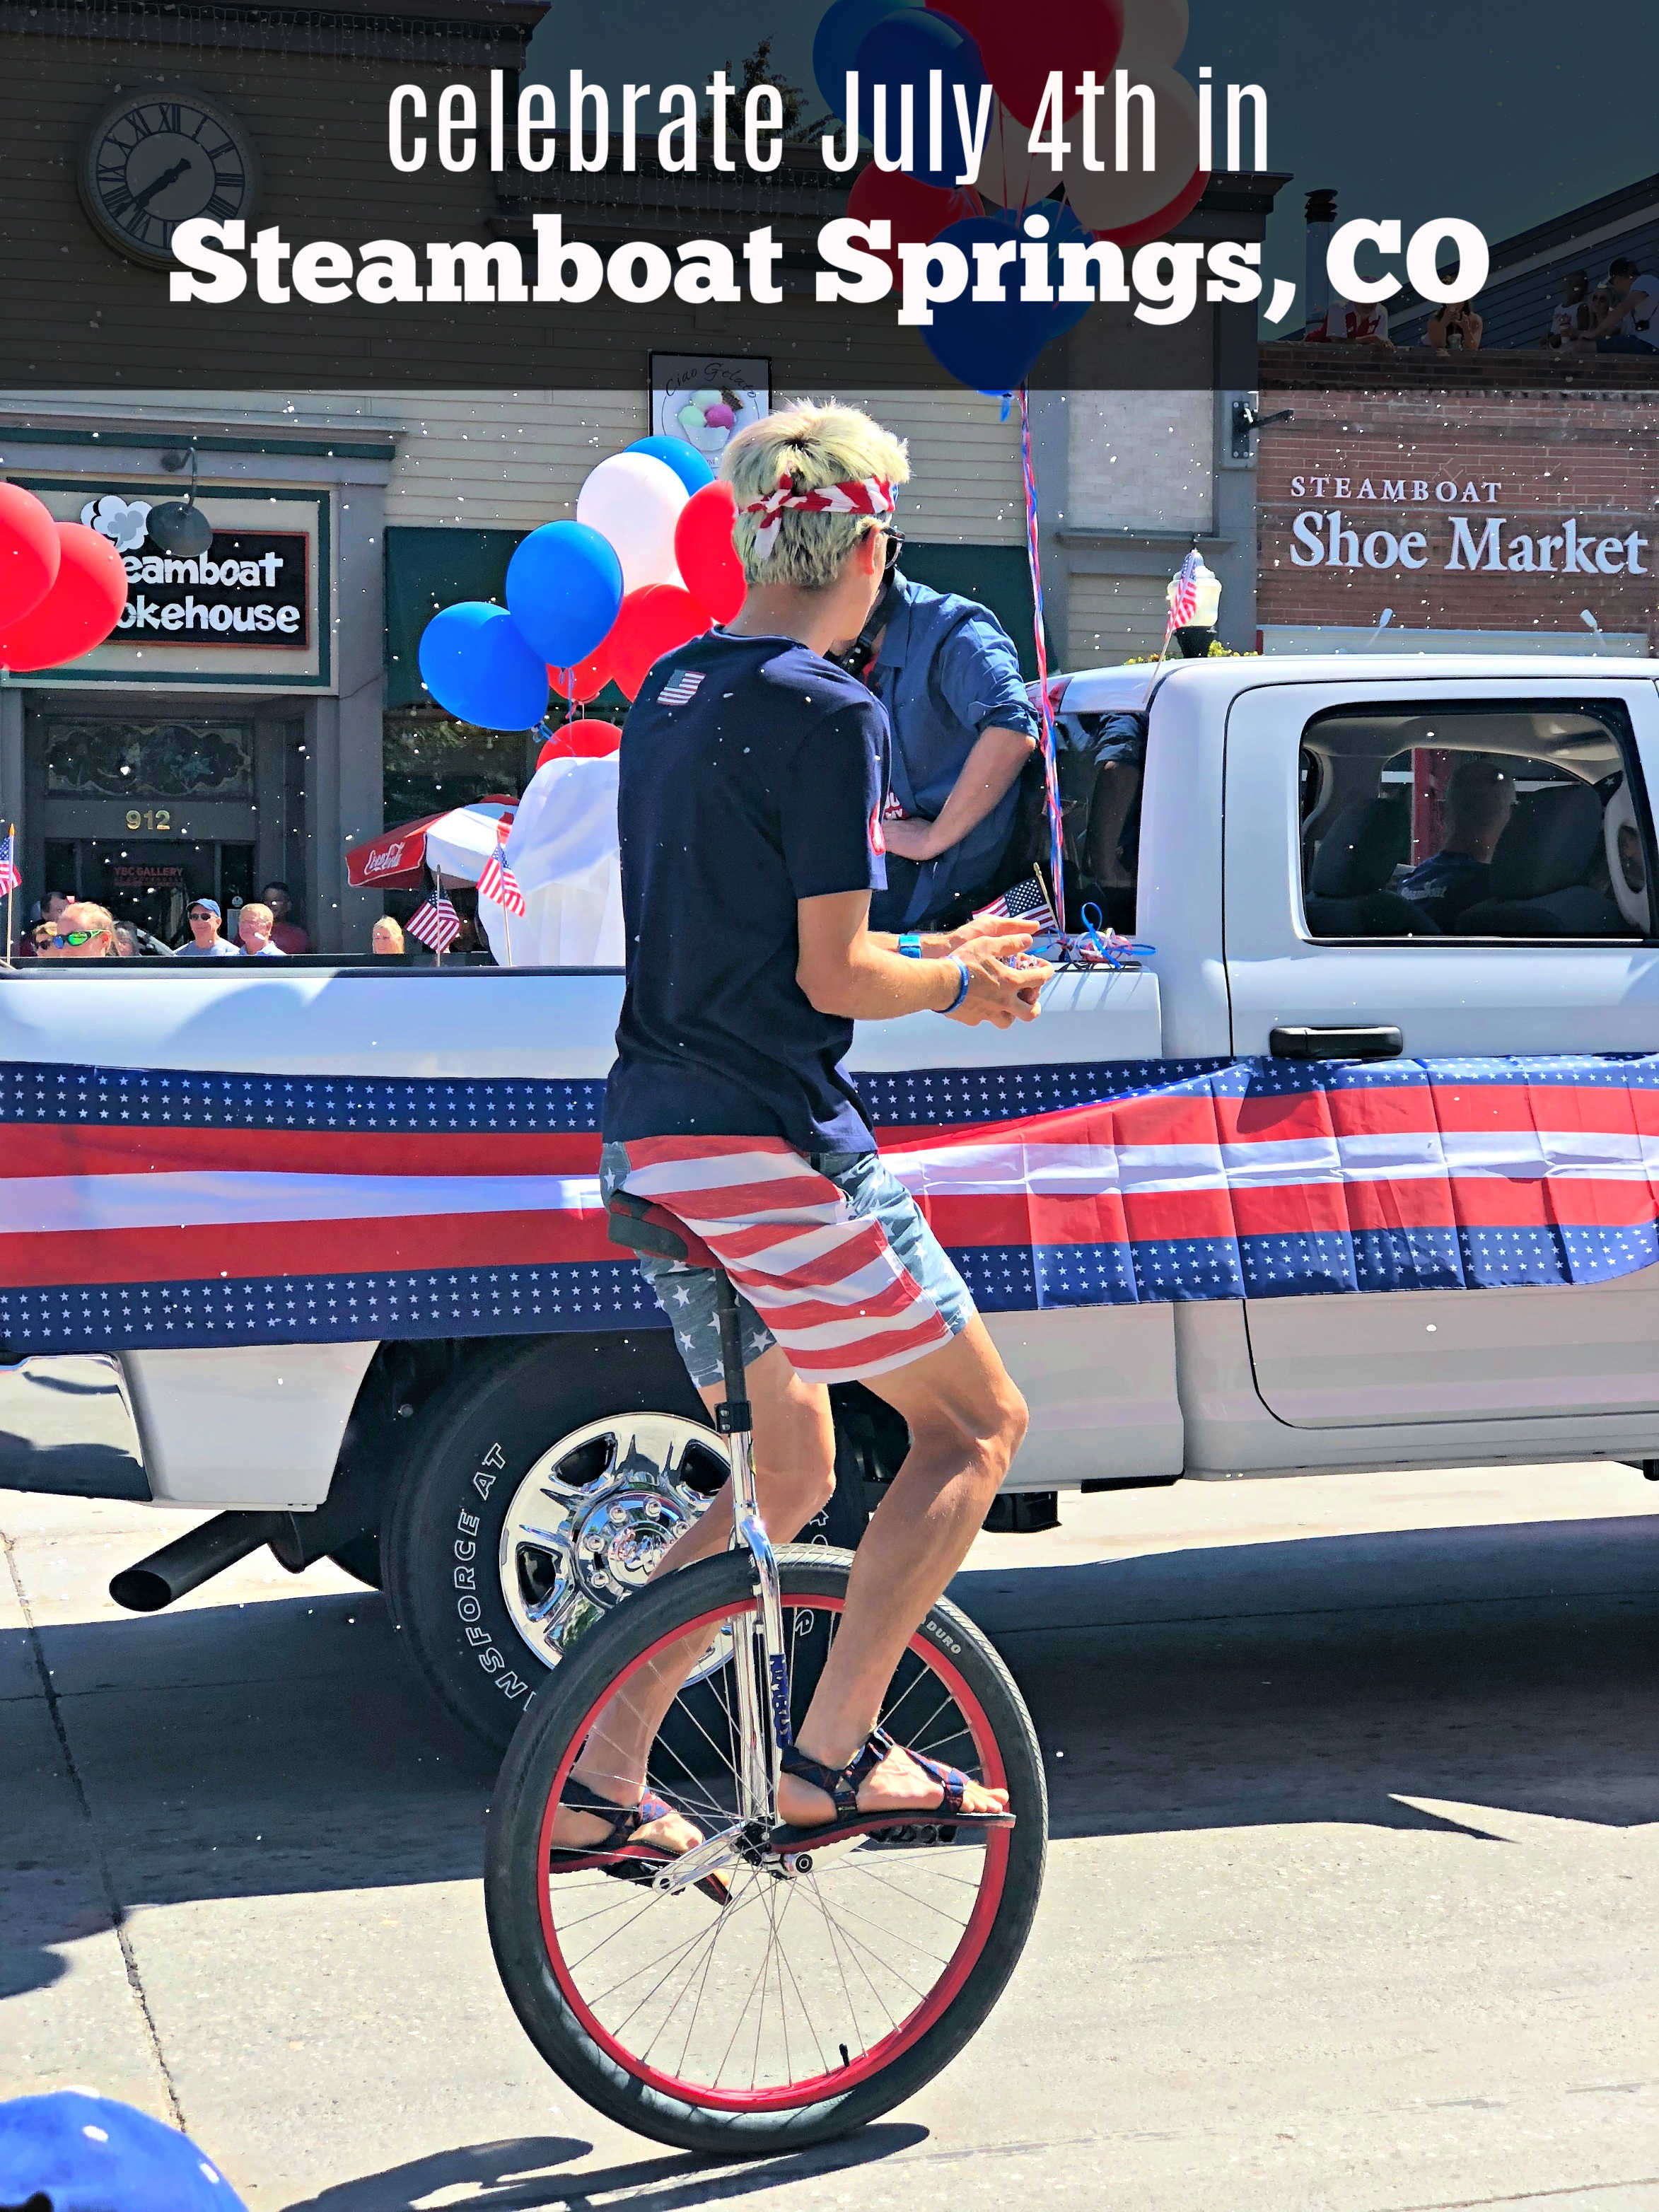 steamboat-springs-fourth-july